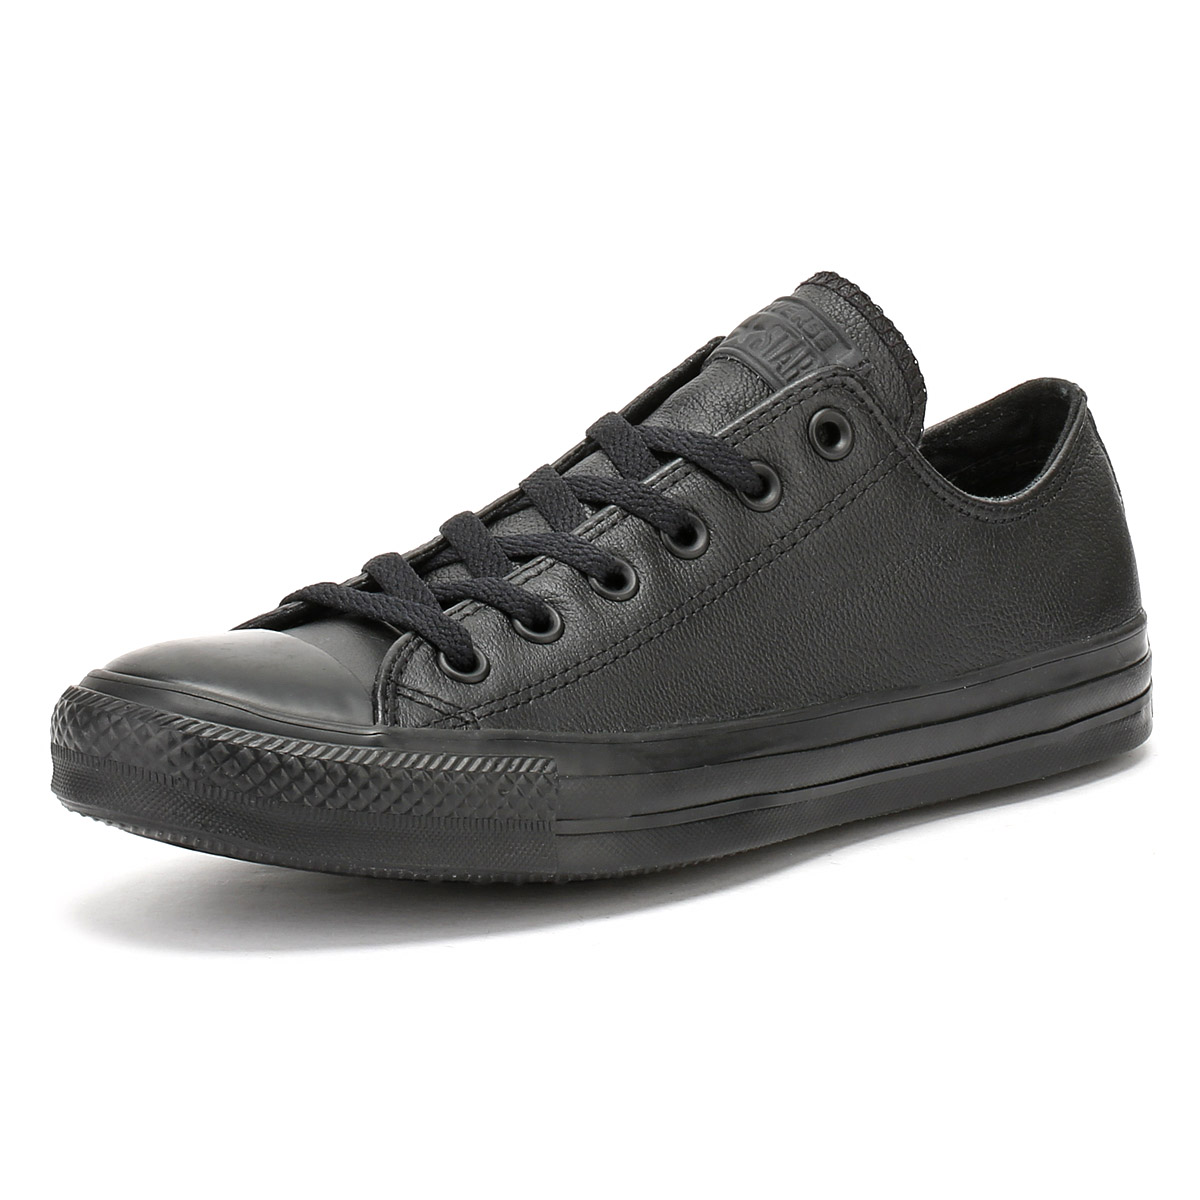 cdd3cd062ed0 Details about Converse Unisex Black All Star OX Leather Trainers Mens  Womens Lace Up Sneakers